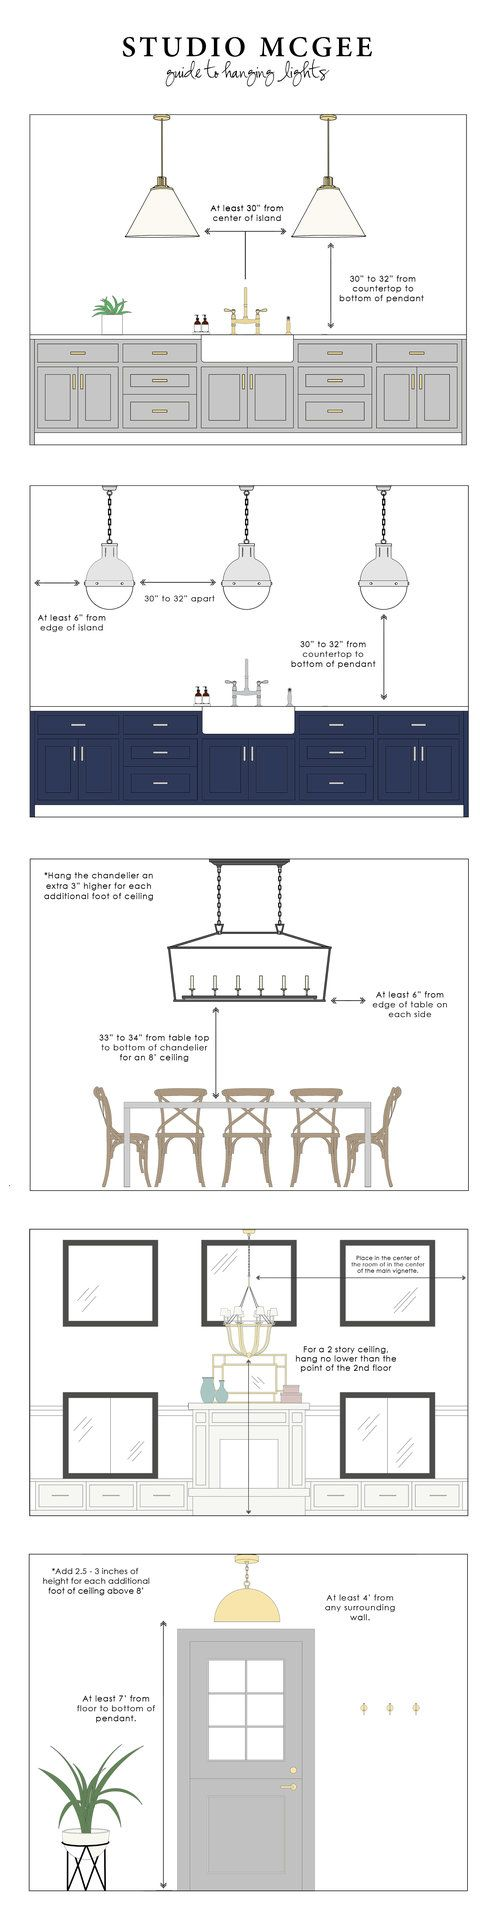 Best 25+ Hanging table ideas on Pinterest | Hanging shelves ...